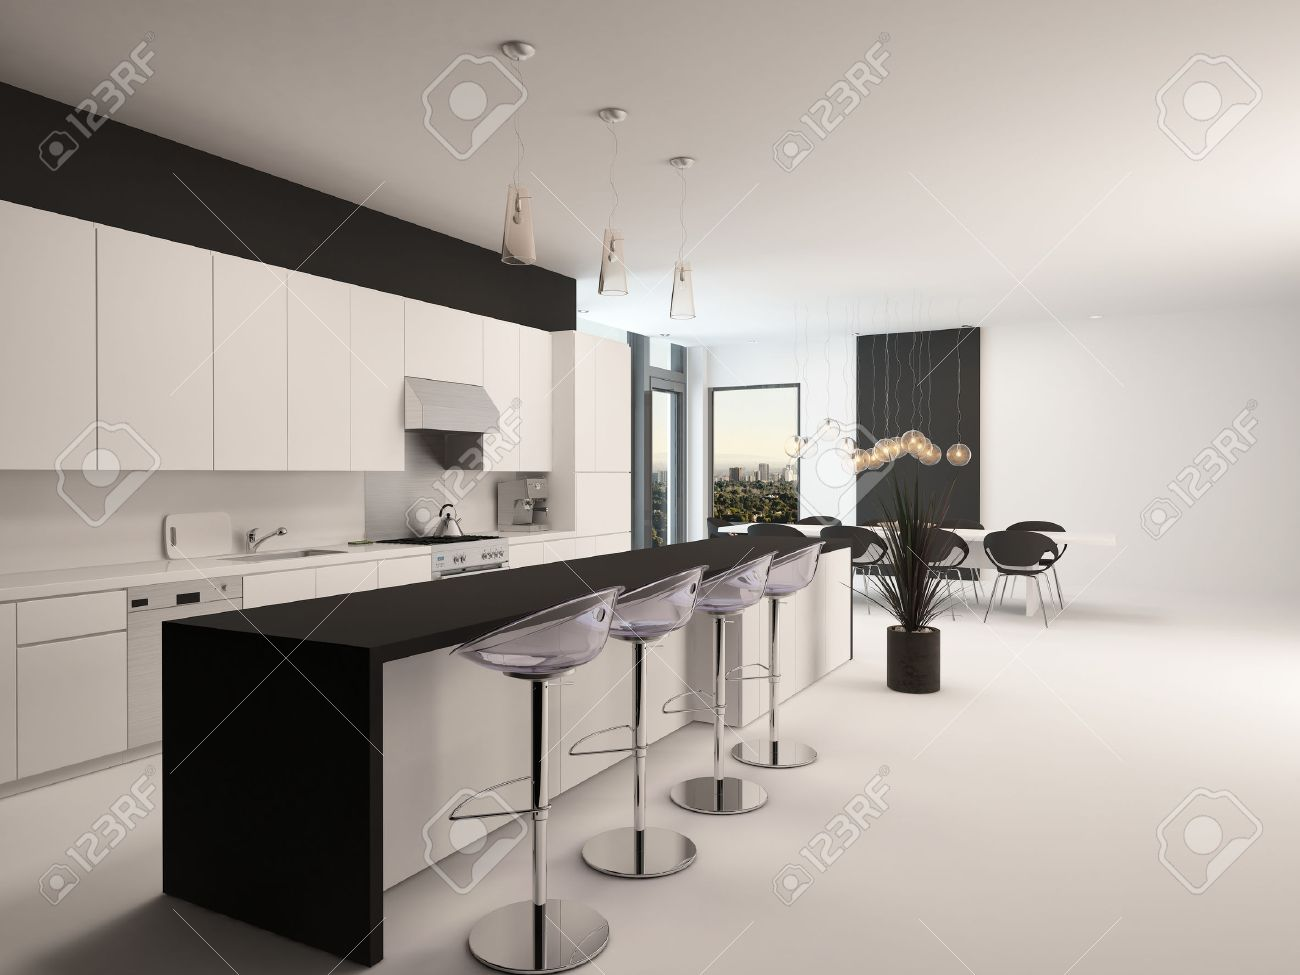 Modern black and white kitchen with a long receding bar counter with bar stools and a & Modern Black And White Kitchen With A Long Receding Bar Counter ... islam-shia.org